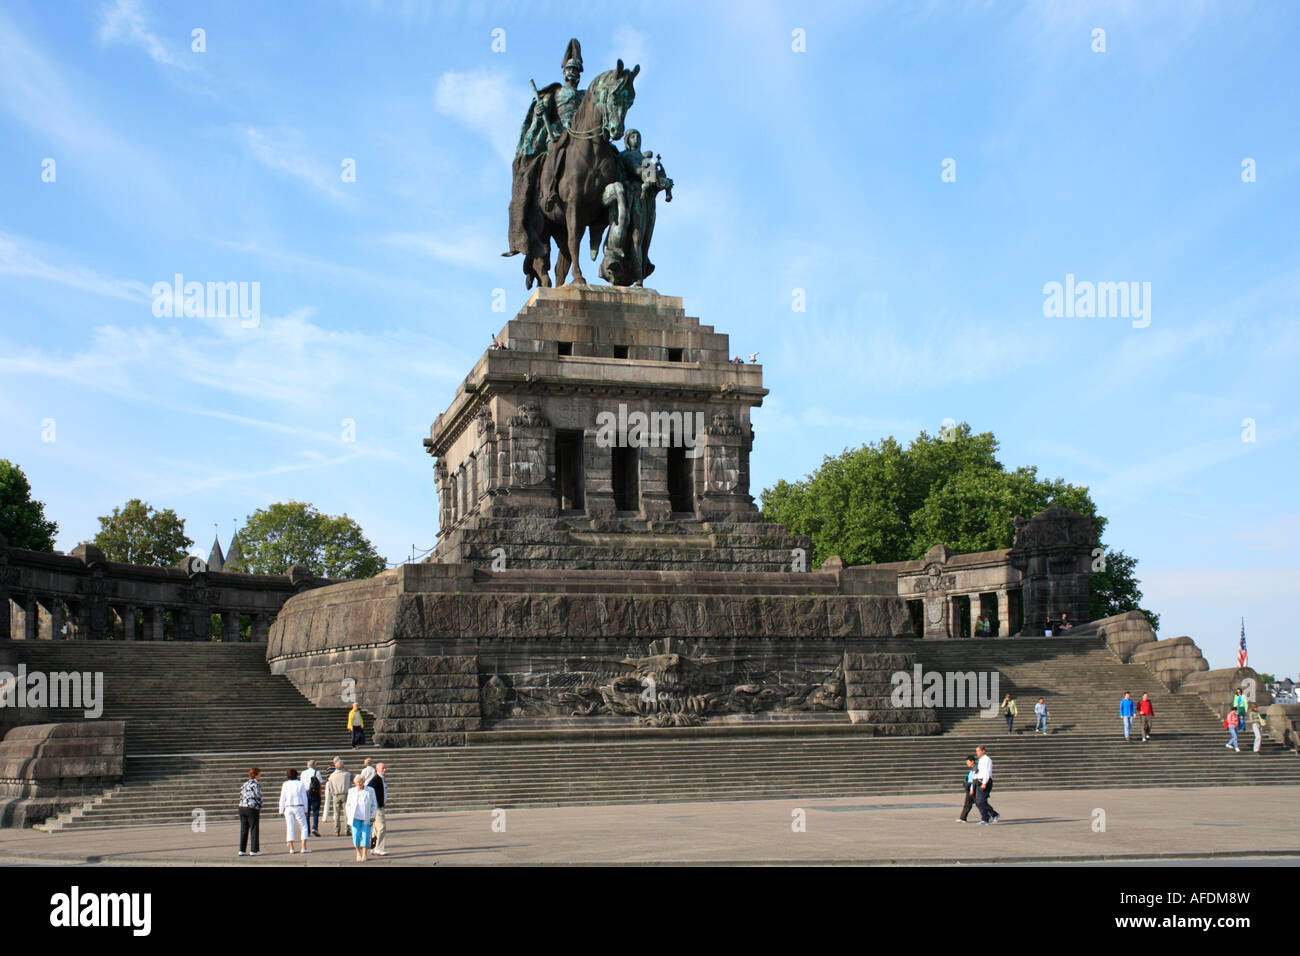 the equestrian statue of kaiser wilhelm i at the german corner stock photo 13914984 alamy. Black Bedroom Furniture Sets. Home Design Ideas